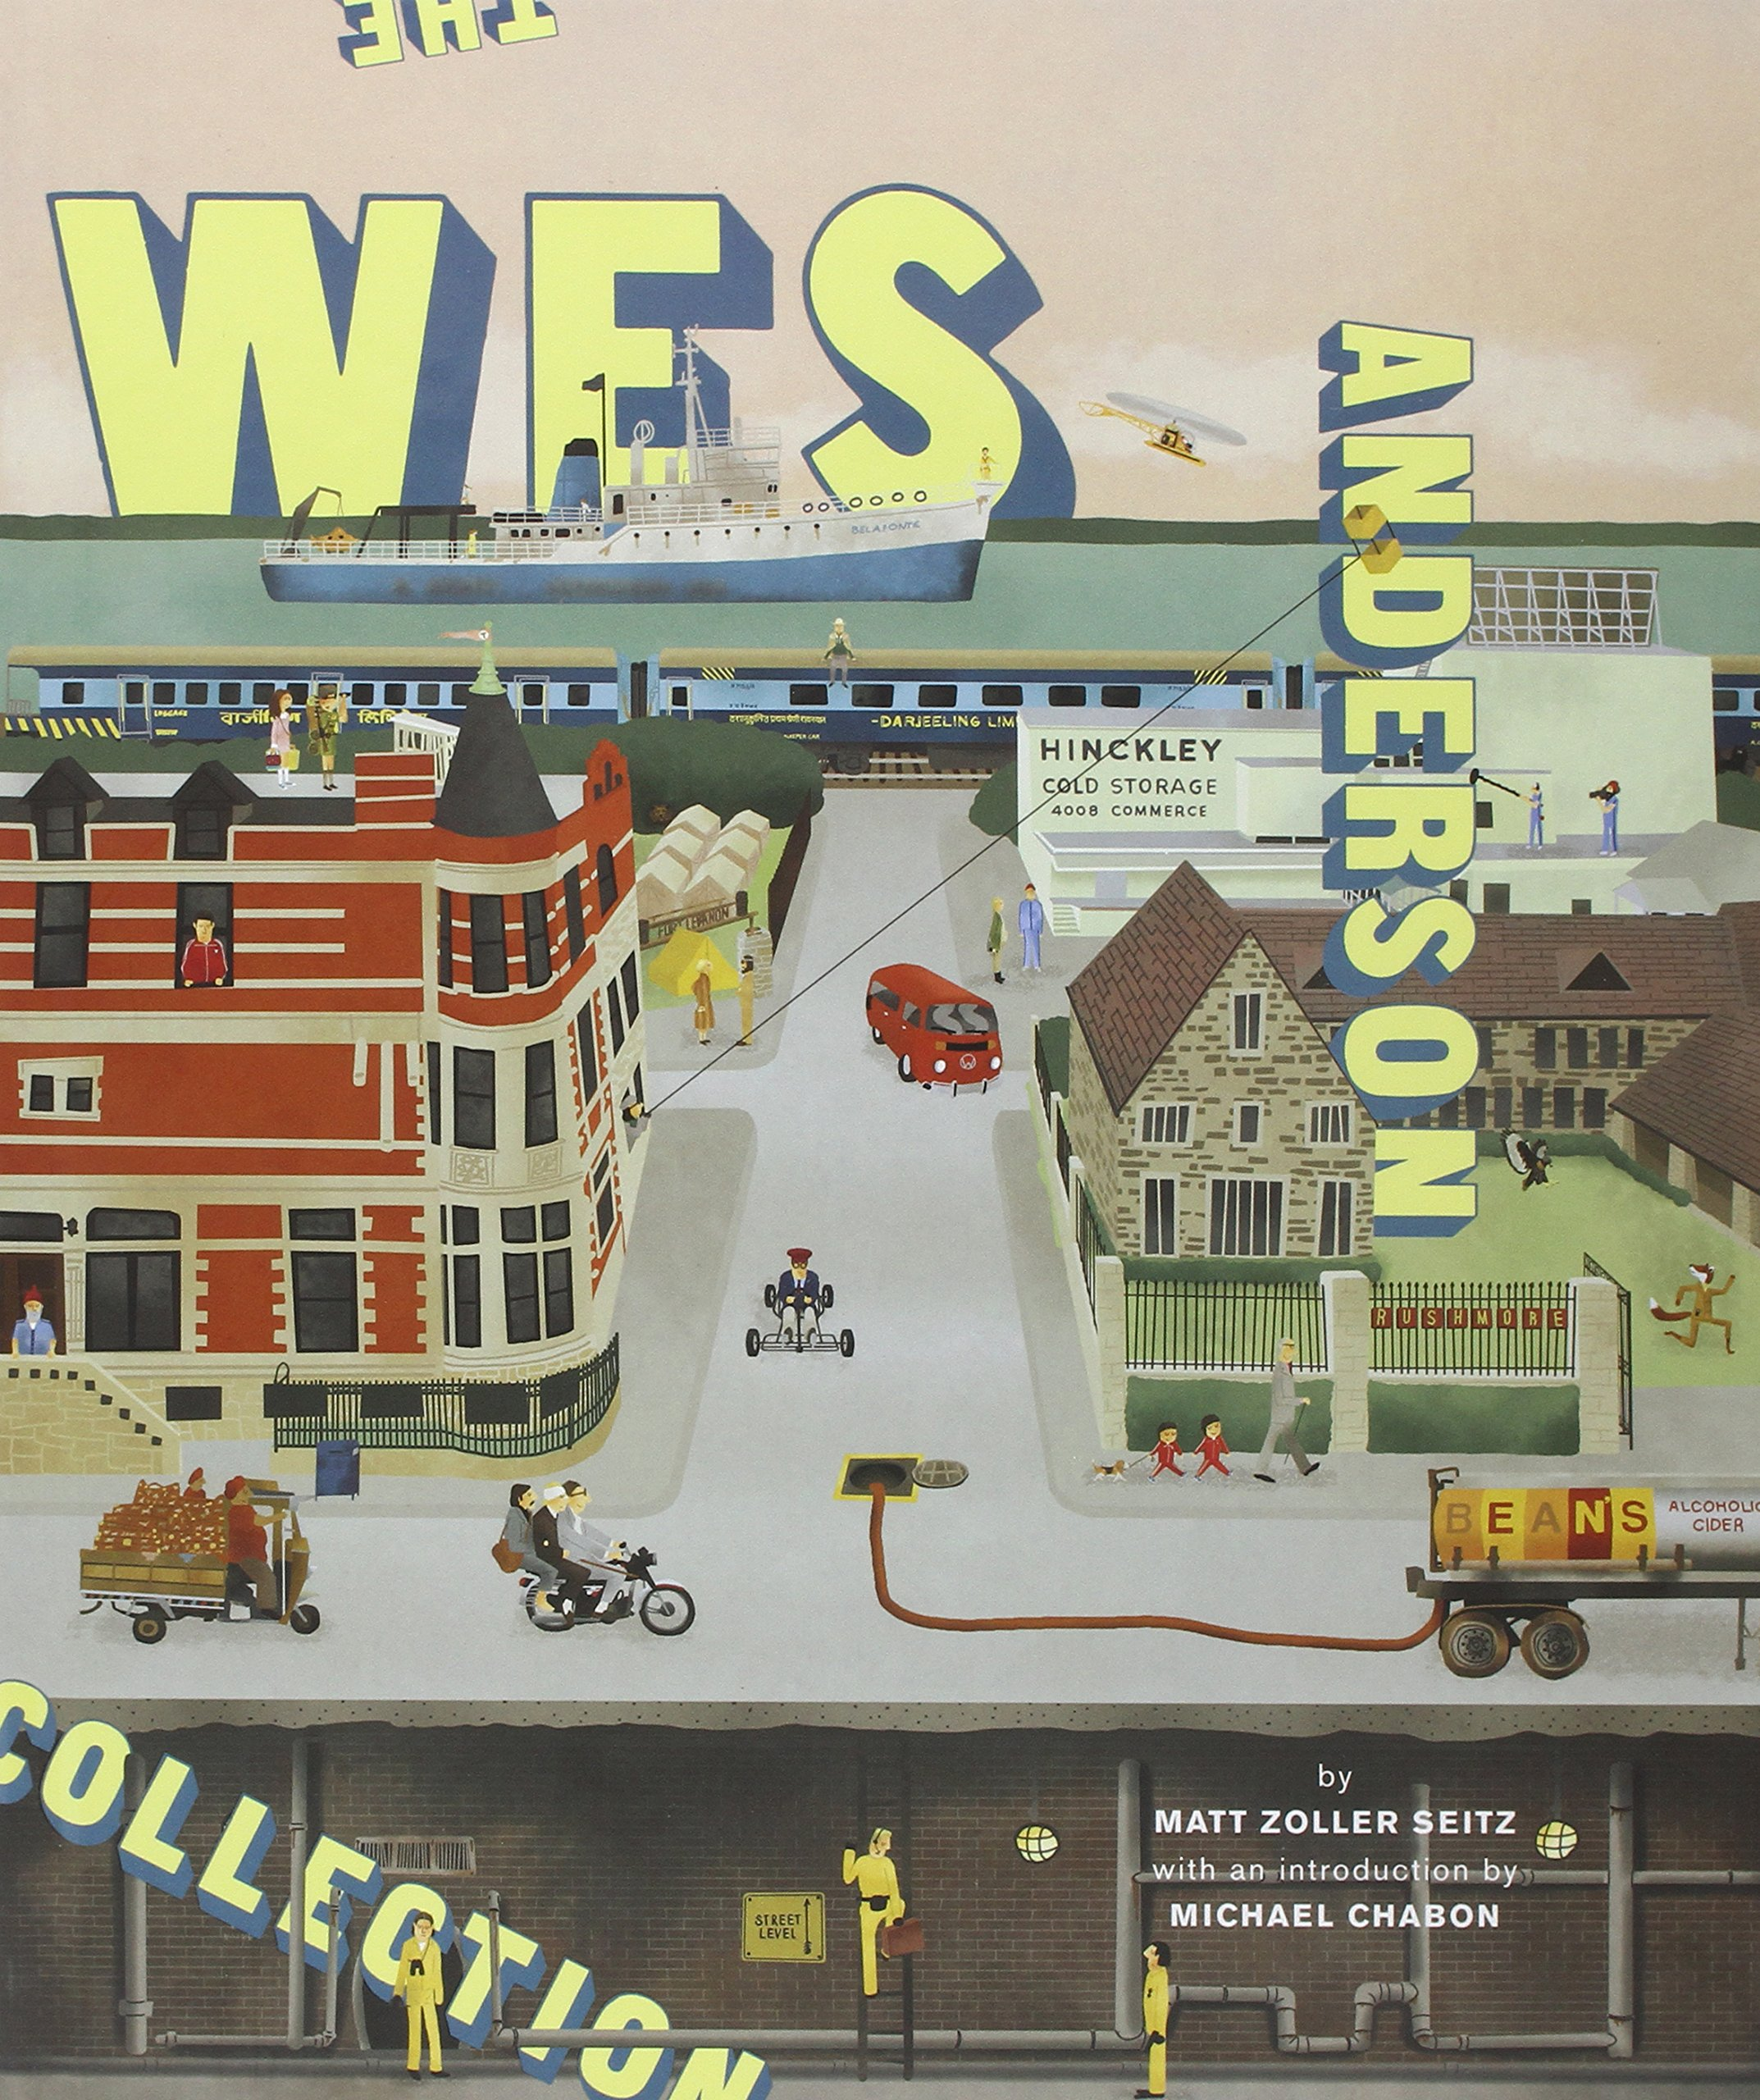 Bad dads art inspired by the films of wes anderson - Wes anderson coffee table book ...